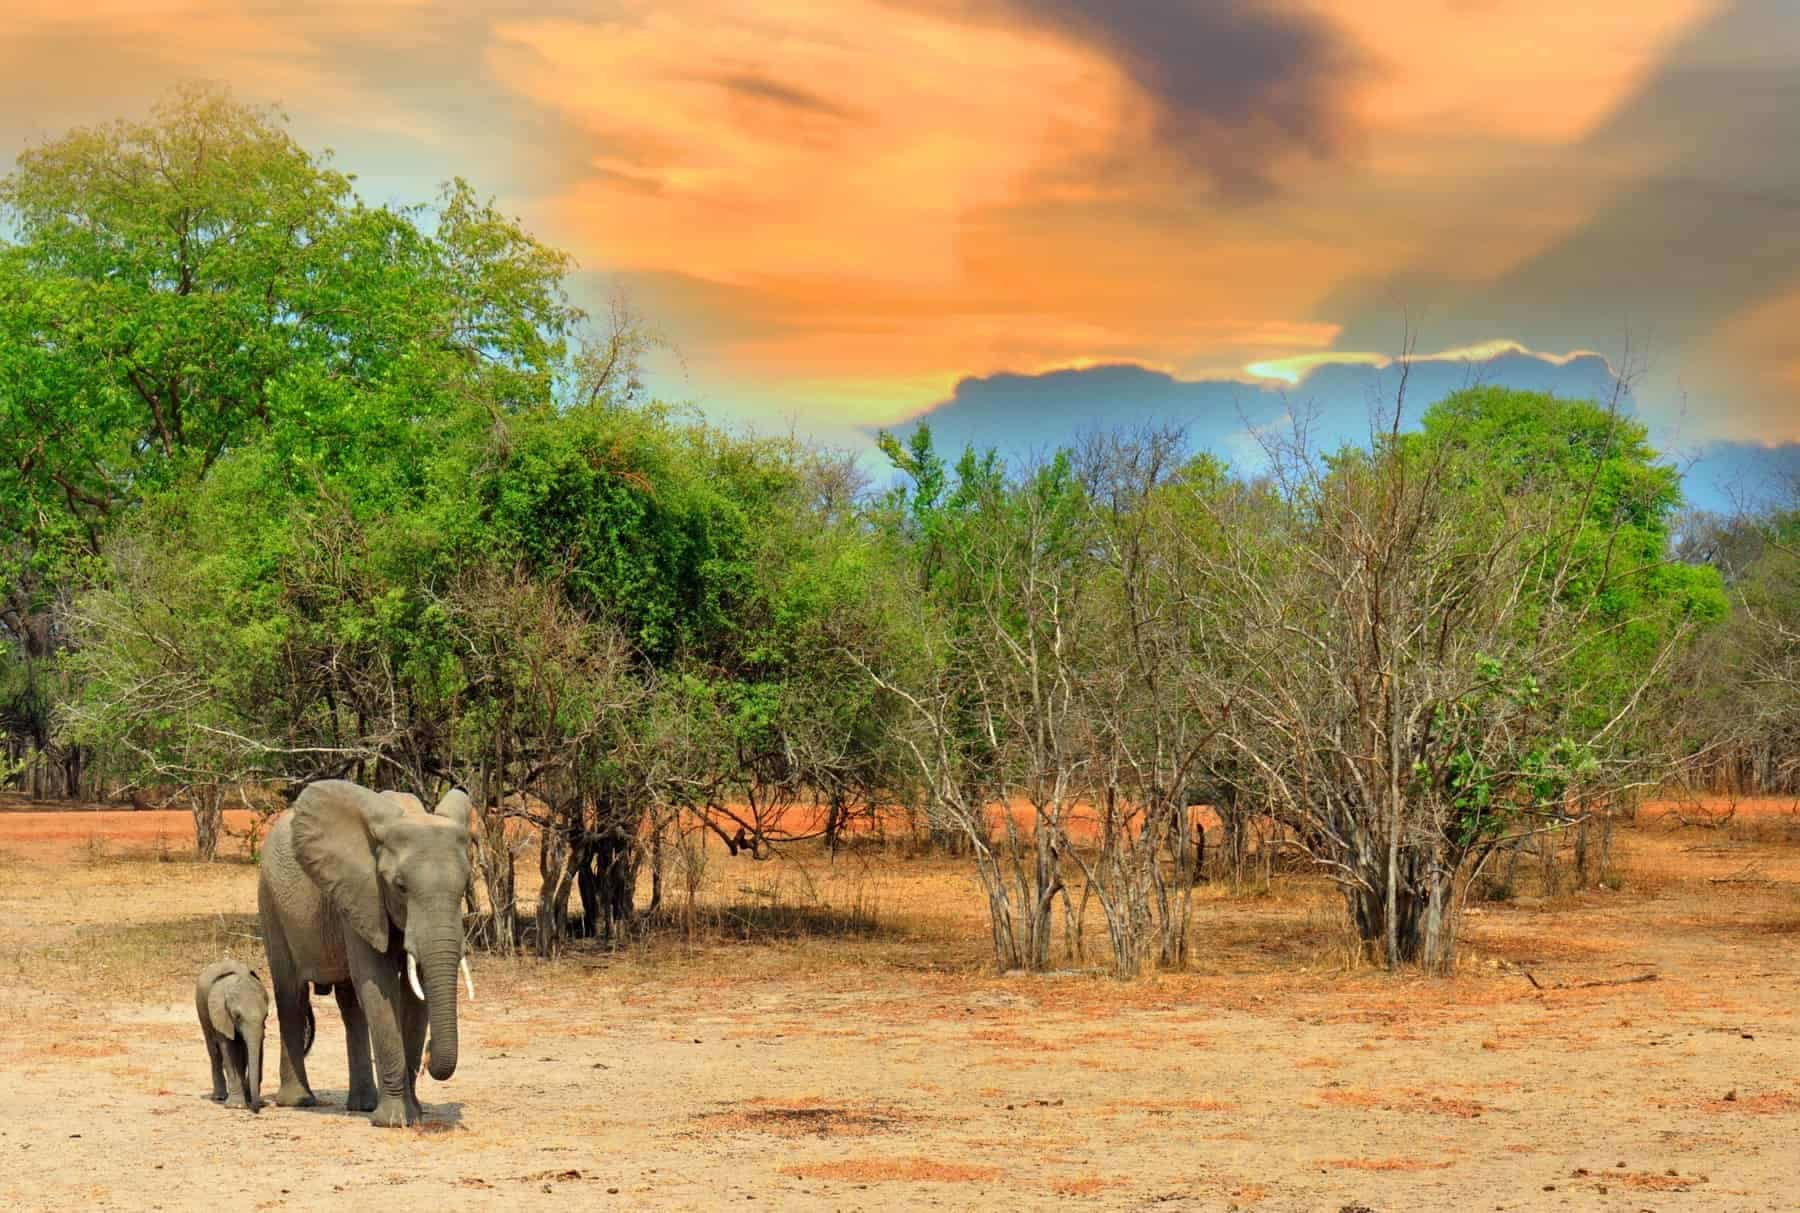 Mother and Baby Calf Elephants standing on the plains with a nice orange and blue sky in South Luangwa National Park, Zambia, Southern Africa